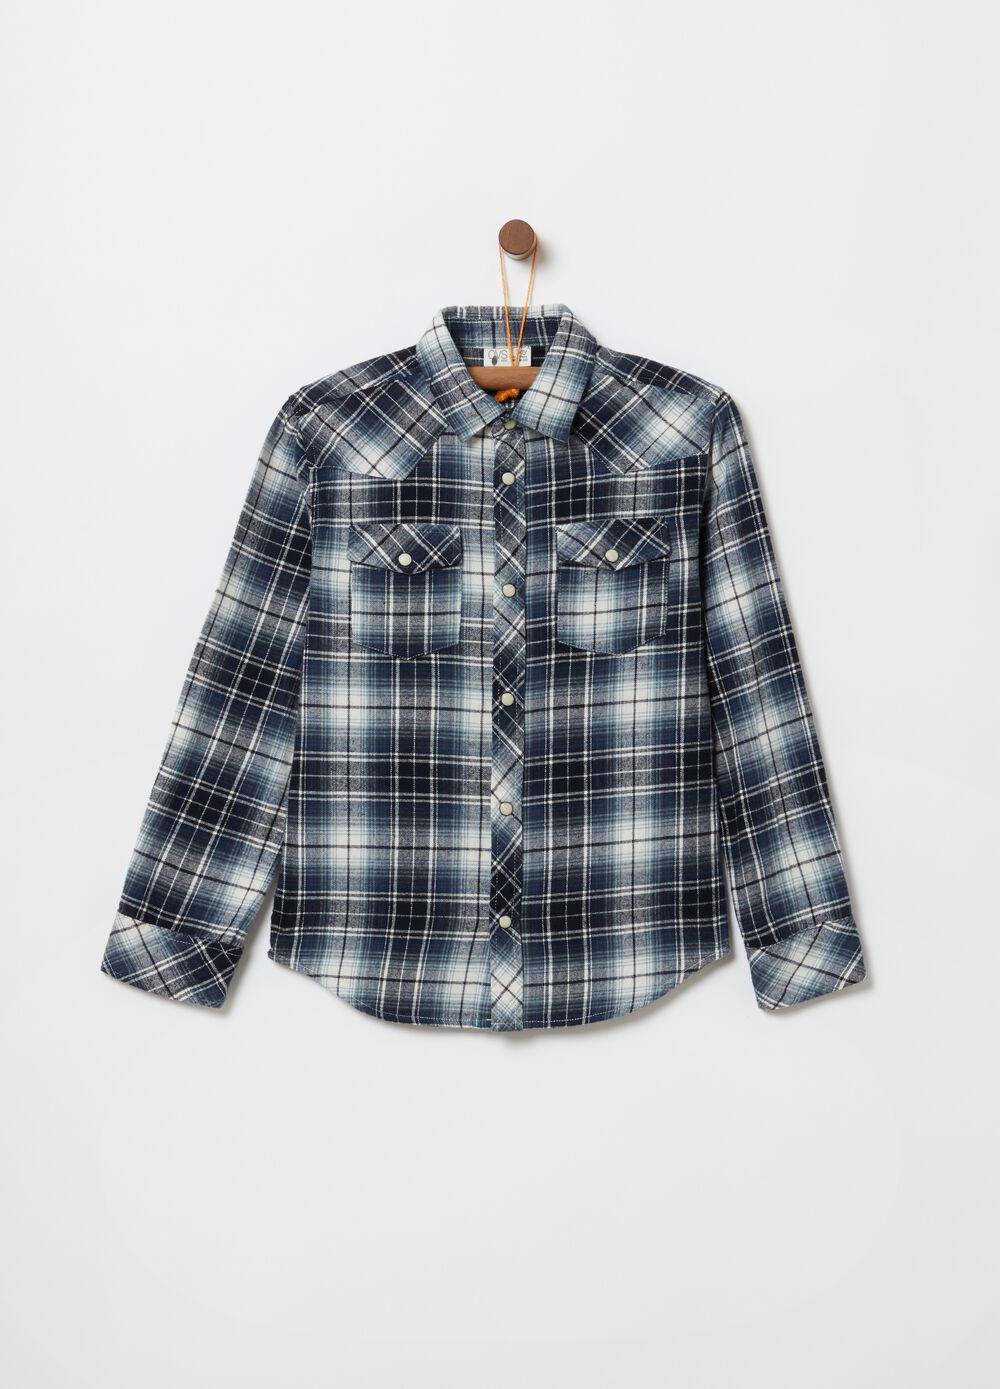 Flannel shirt with check pattern